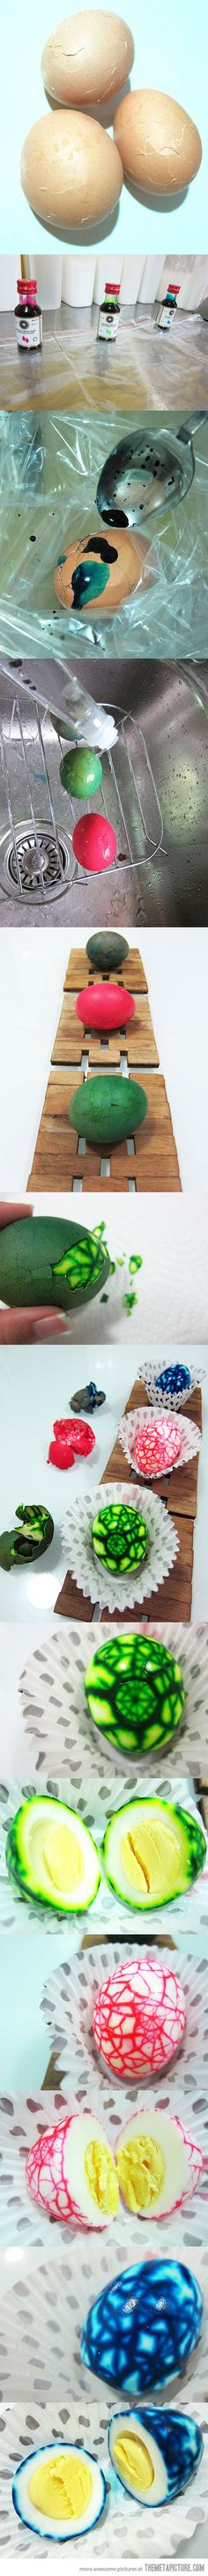 This is really cool. I'm not sure if it should be considered art or food. I guess both.